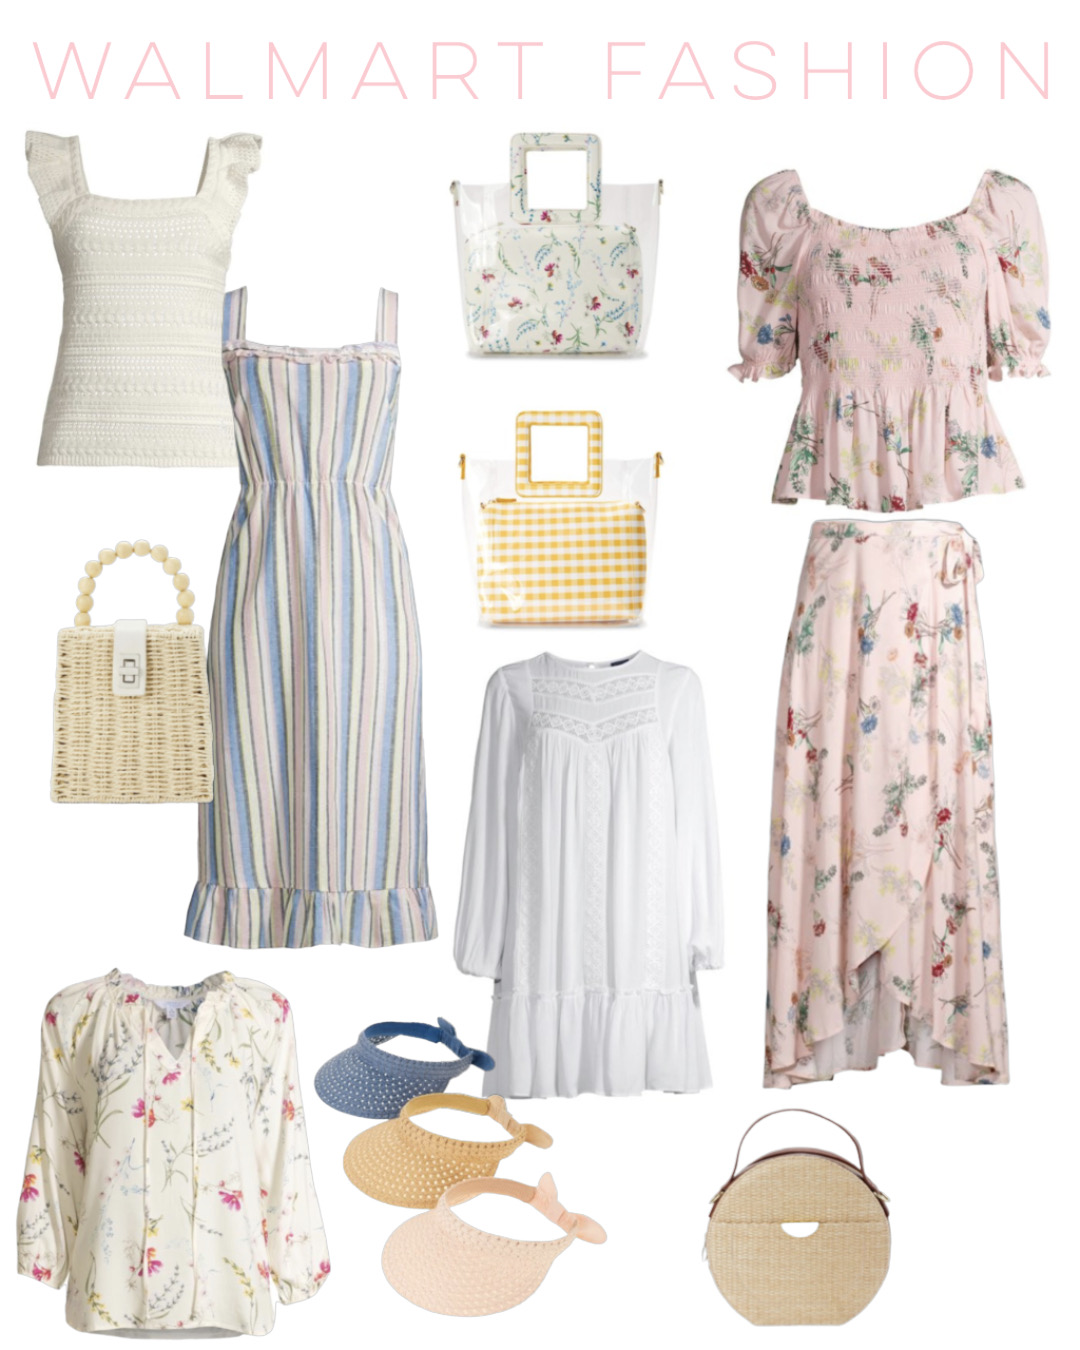 Affordable Fashion Finds!